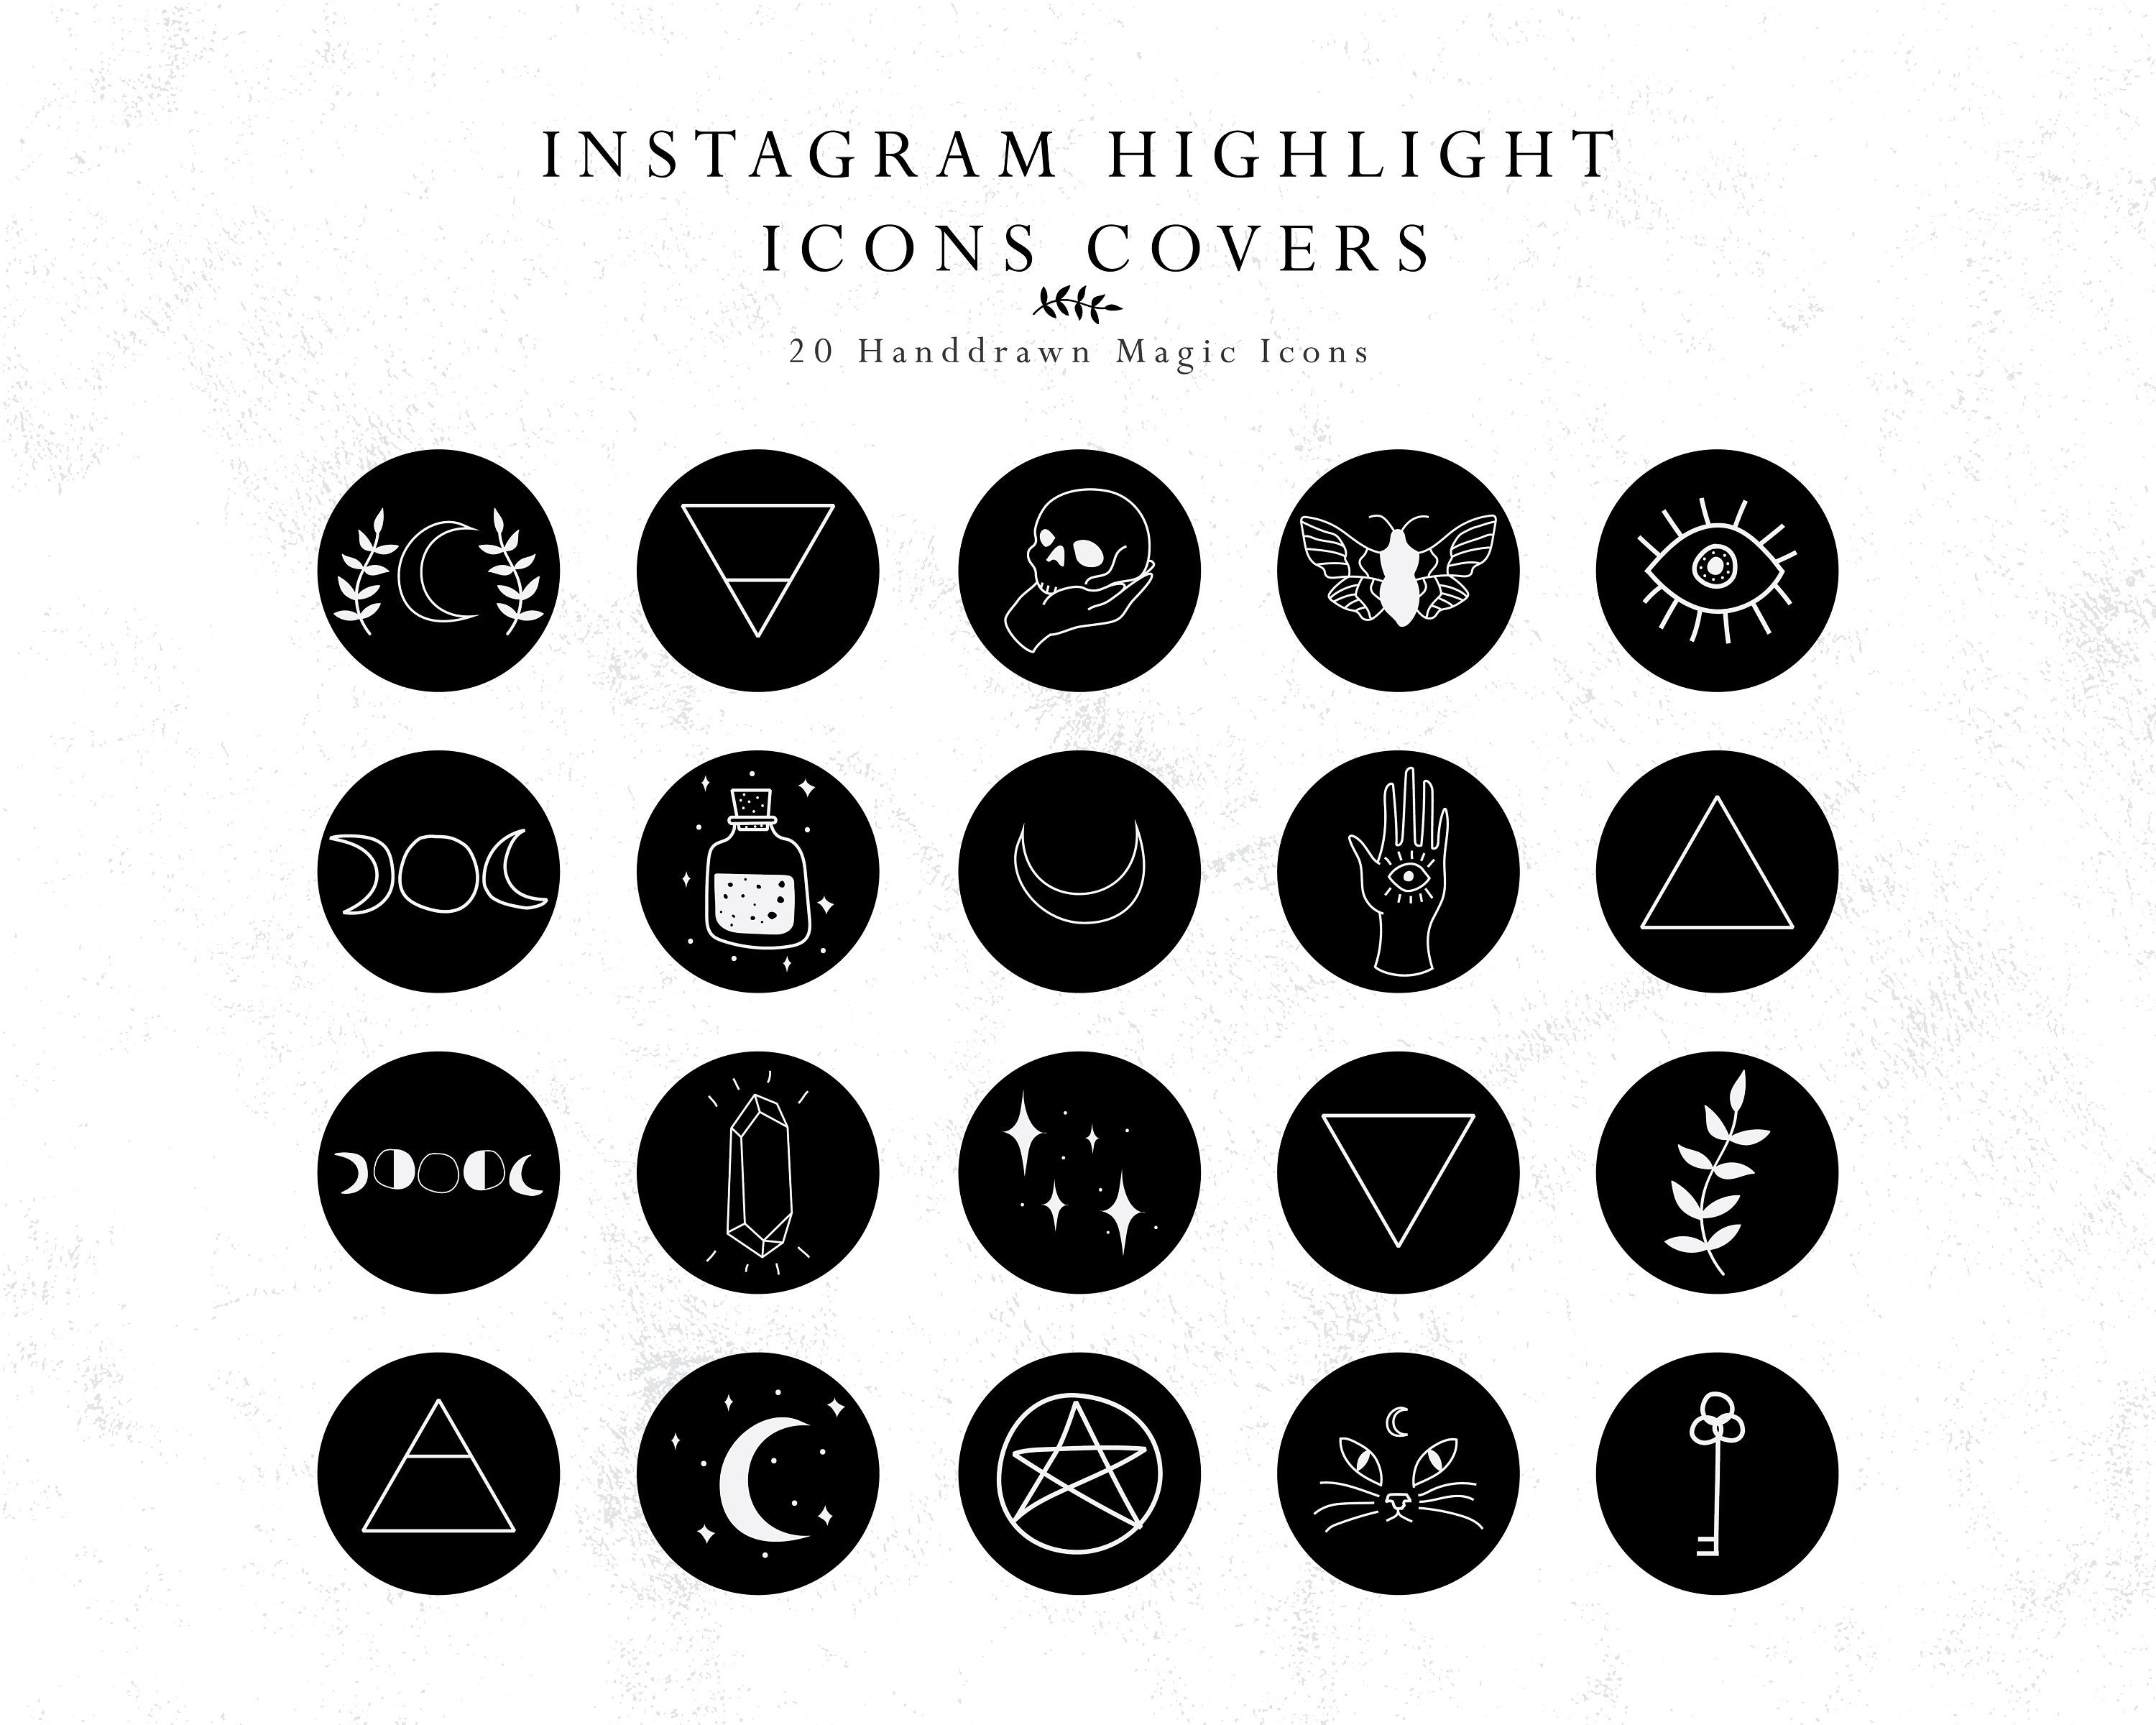 Instagram Story Highlights Cover Icons Magic Handdrawn